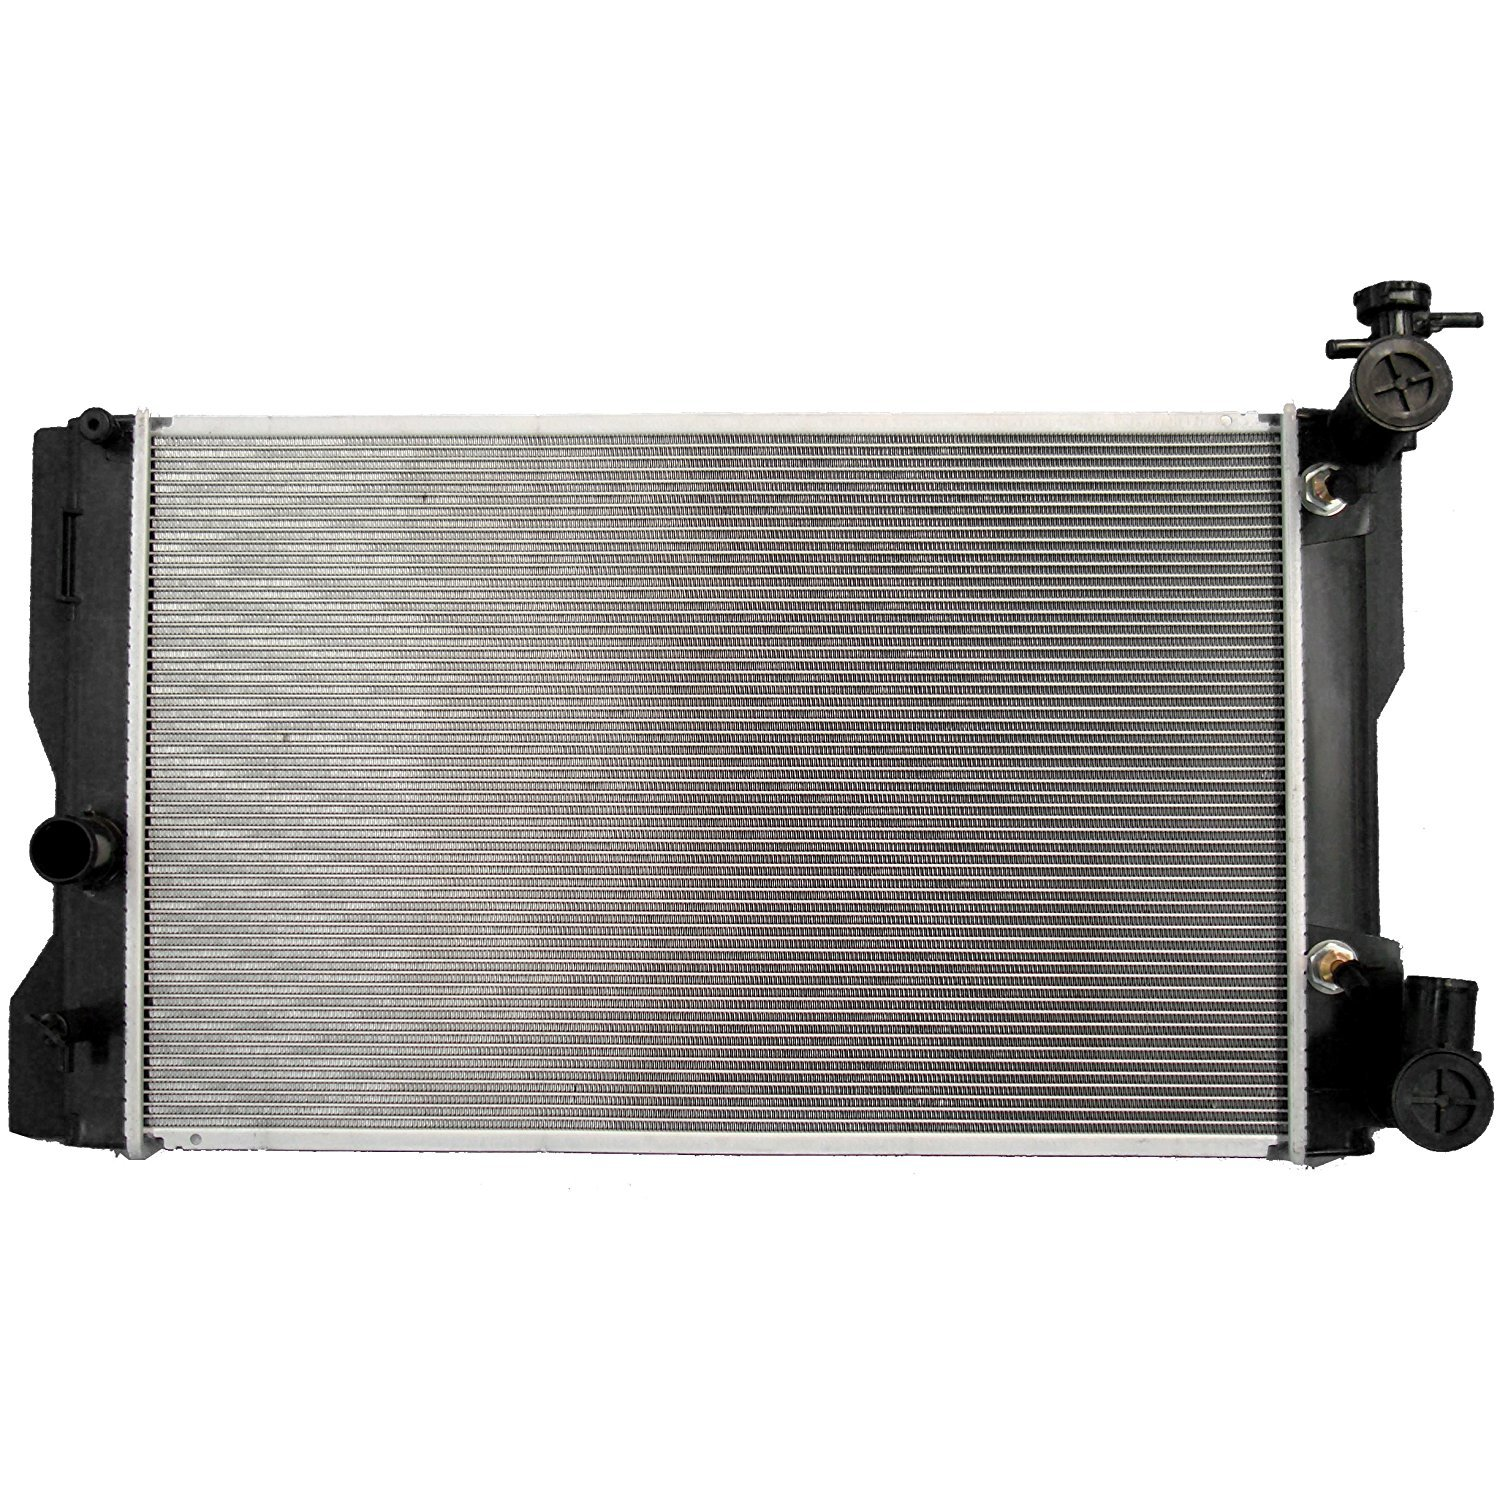 ECCPP Radiator 13106 for 2009-2011 Toyota Corolla/Matrix Base/CE/LE/S/XLE Sedan/Wagon 4-Door 1.8L